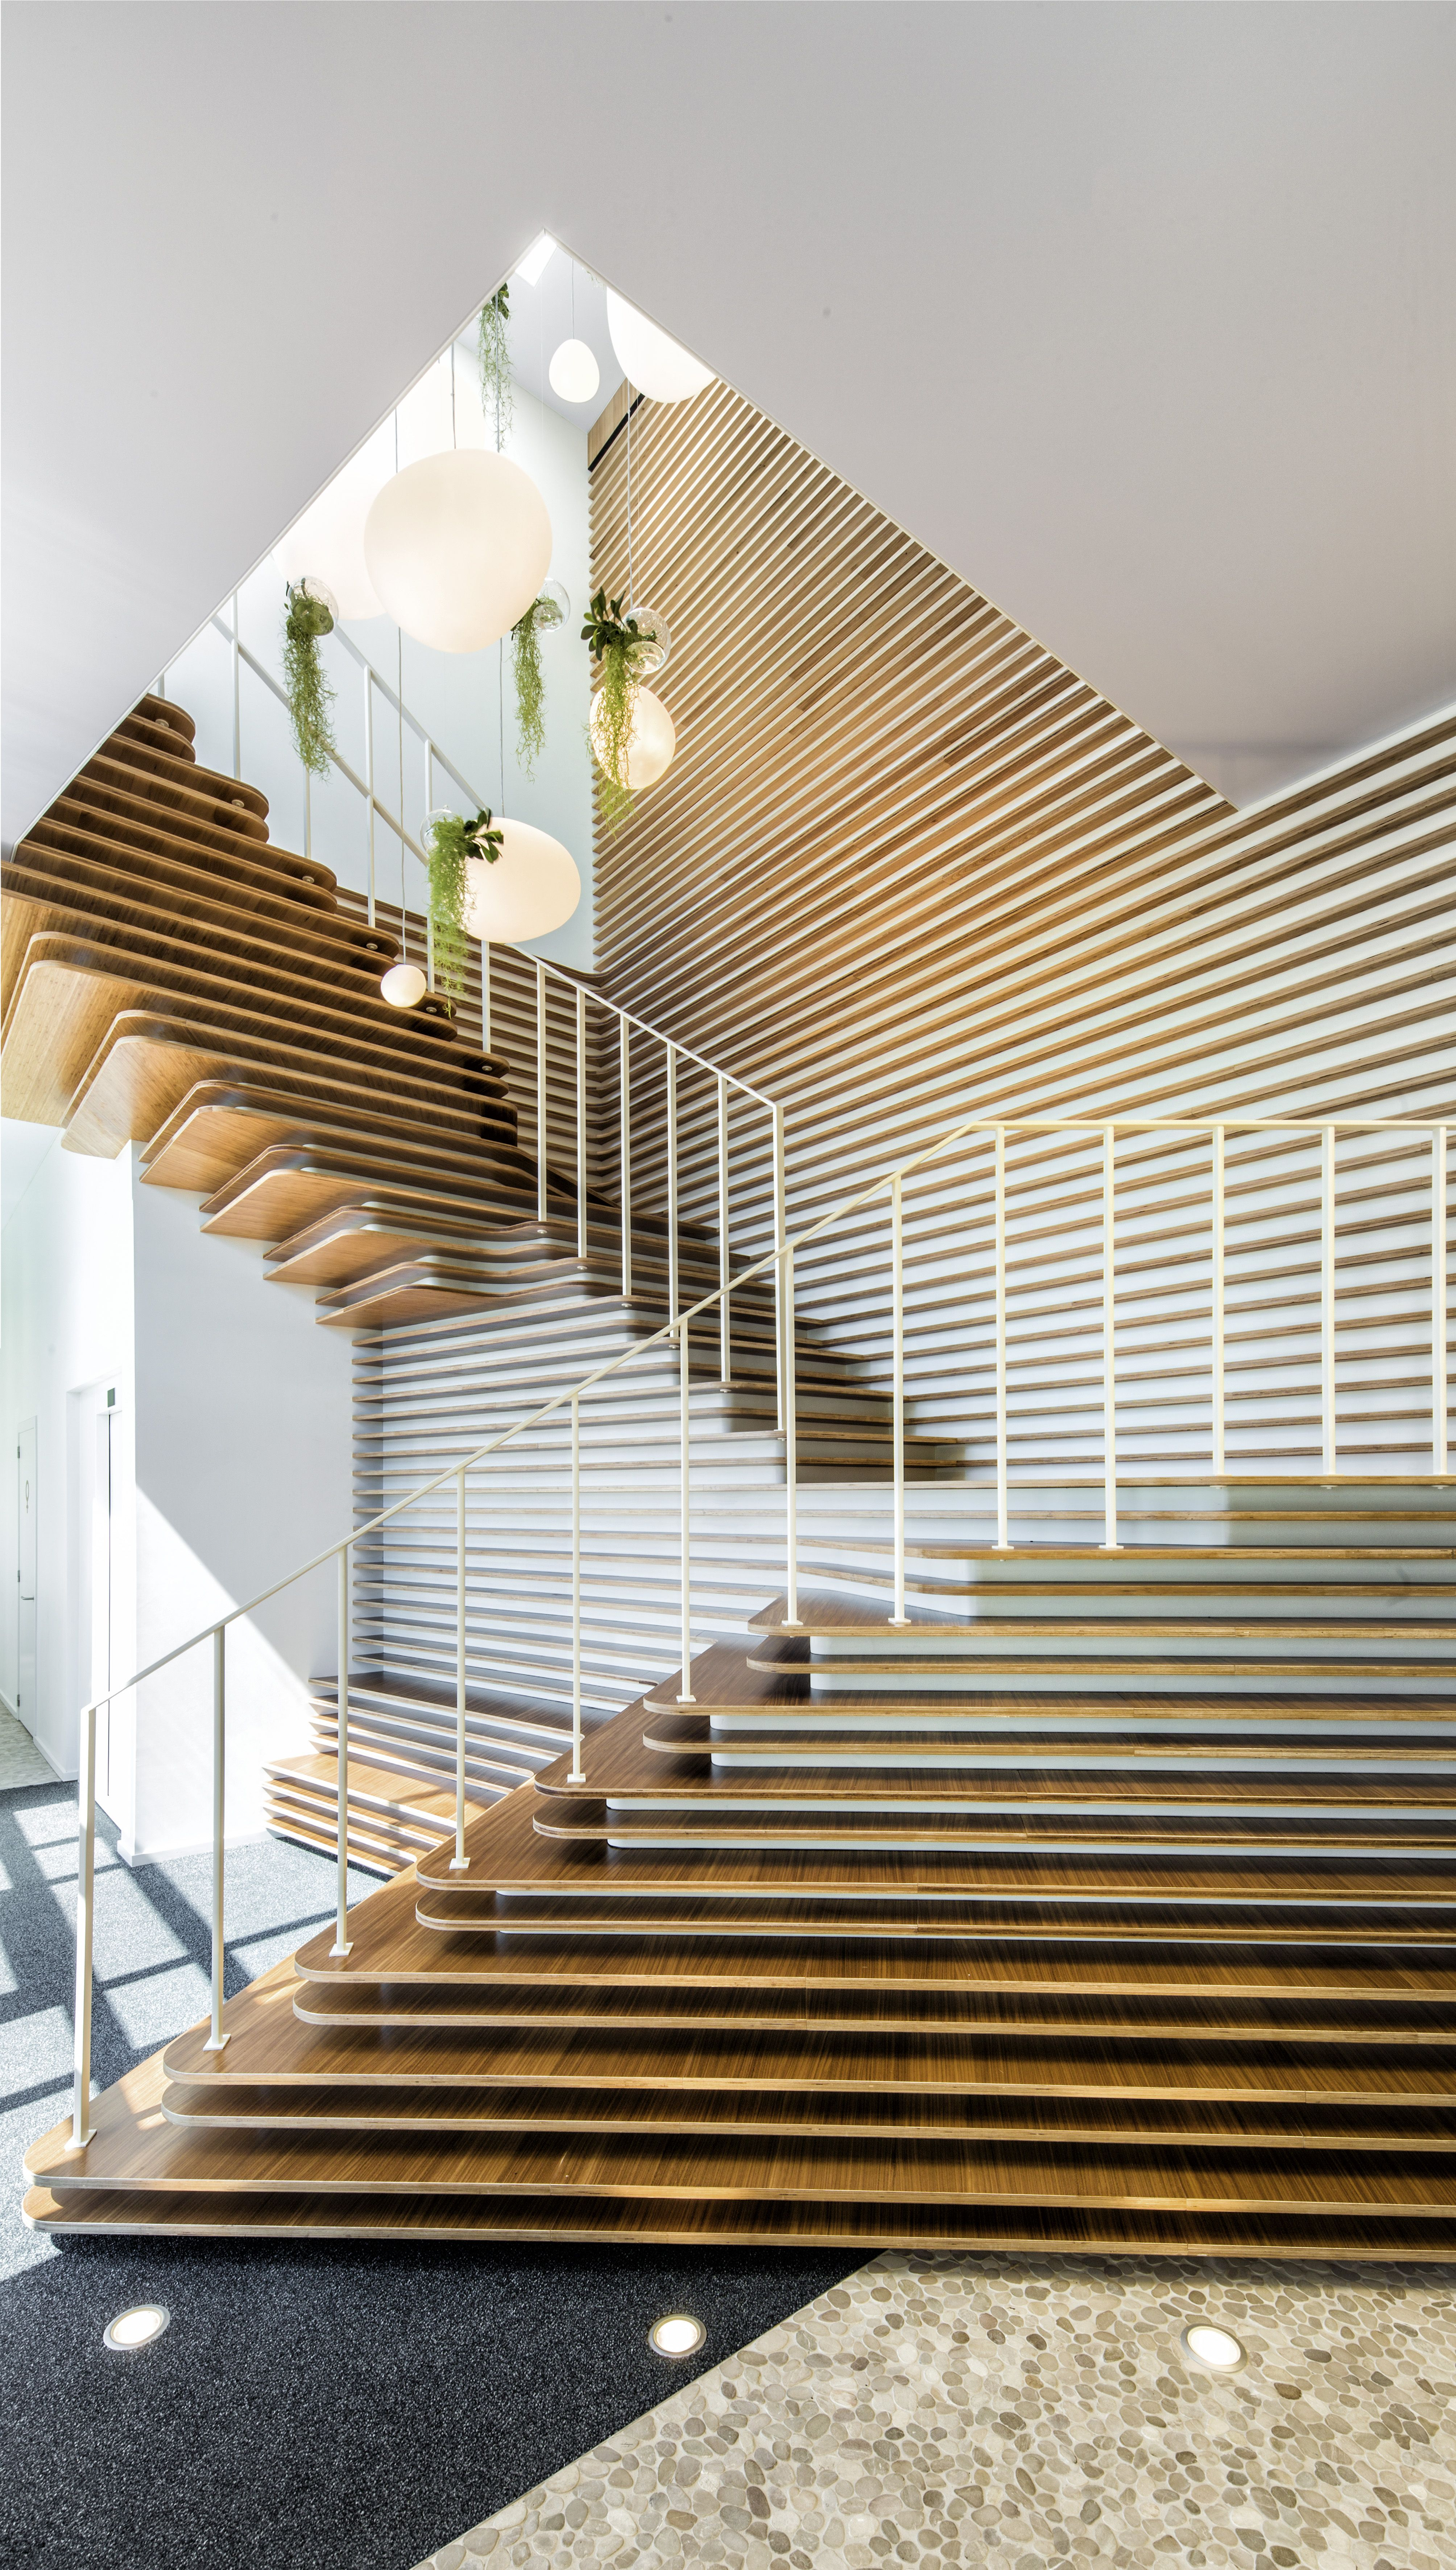 Decospan treehouse wood veneer samples experience zone for interior architects designers